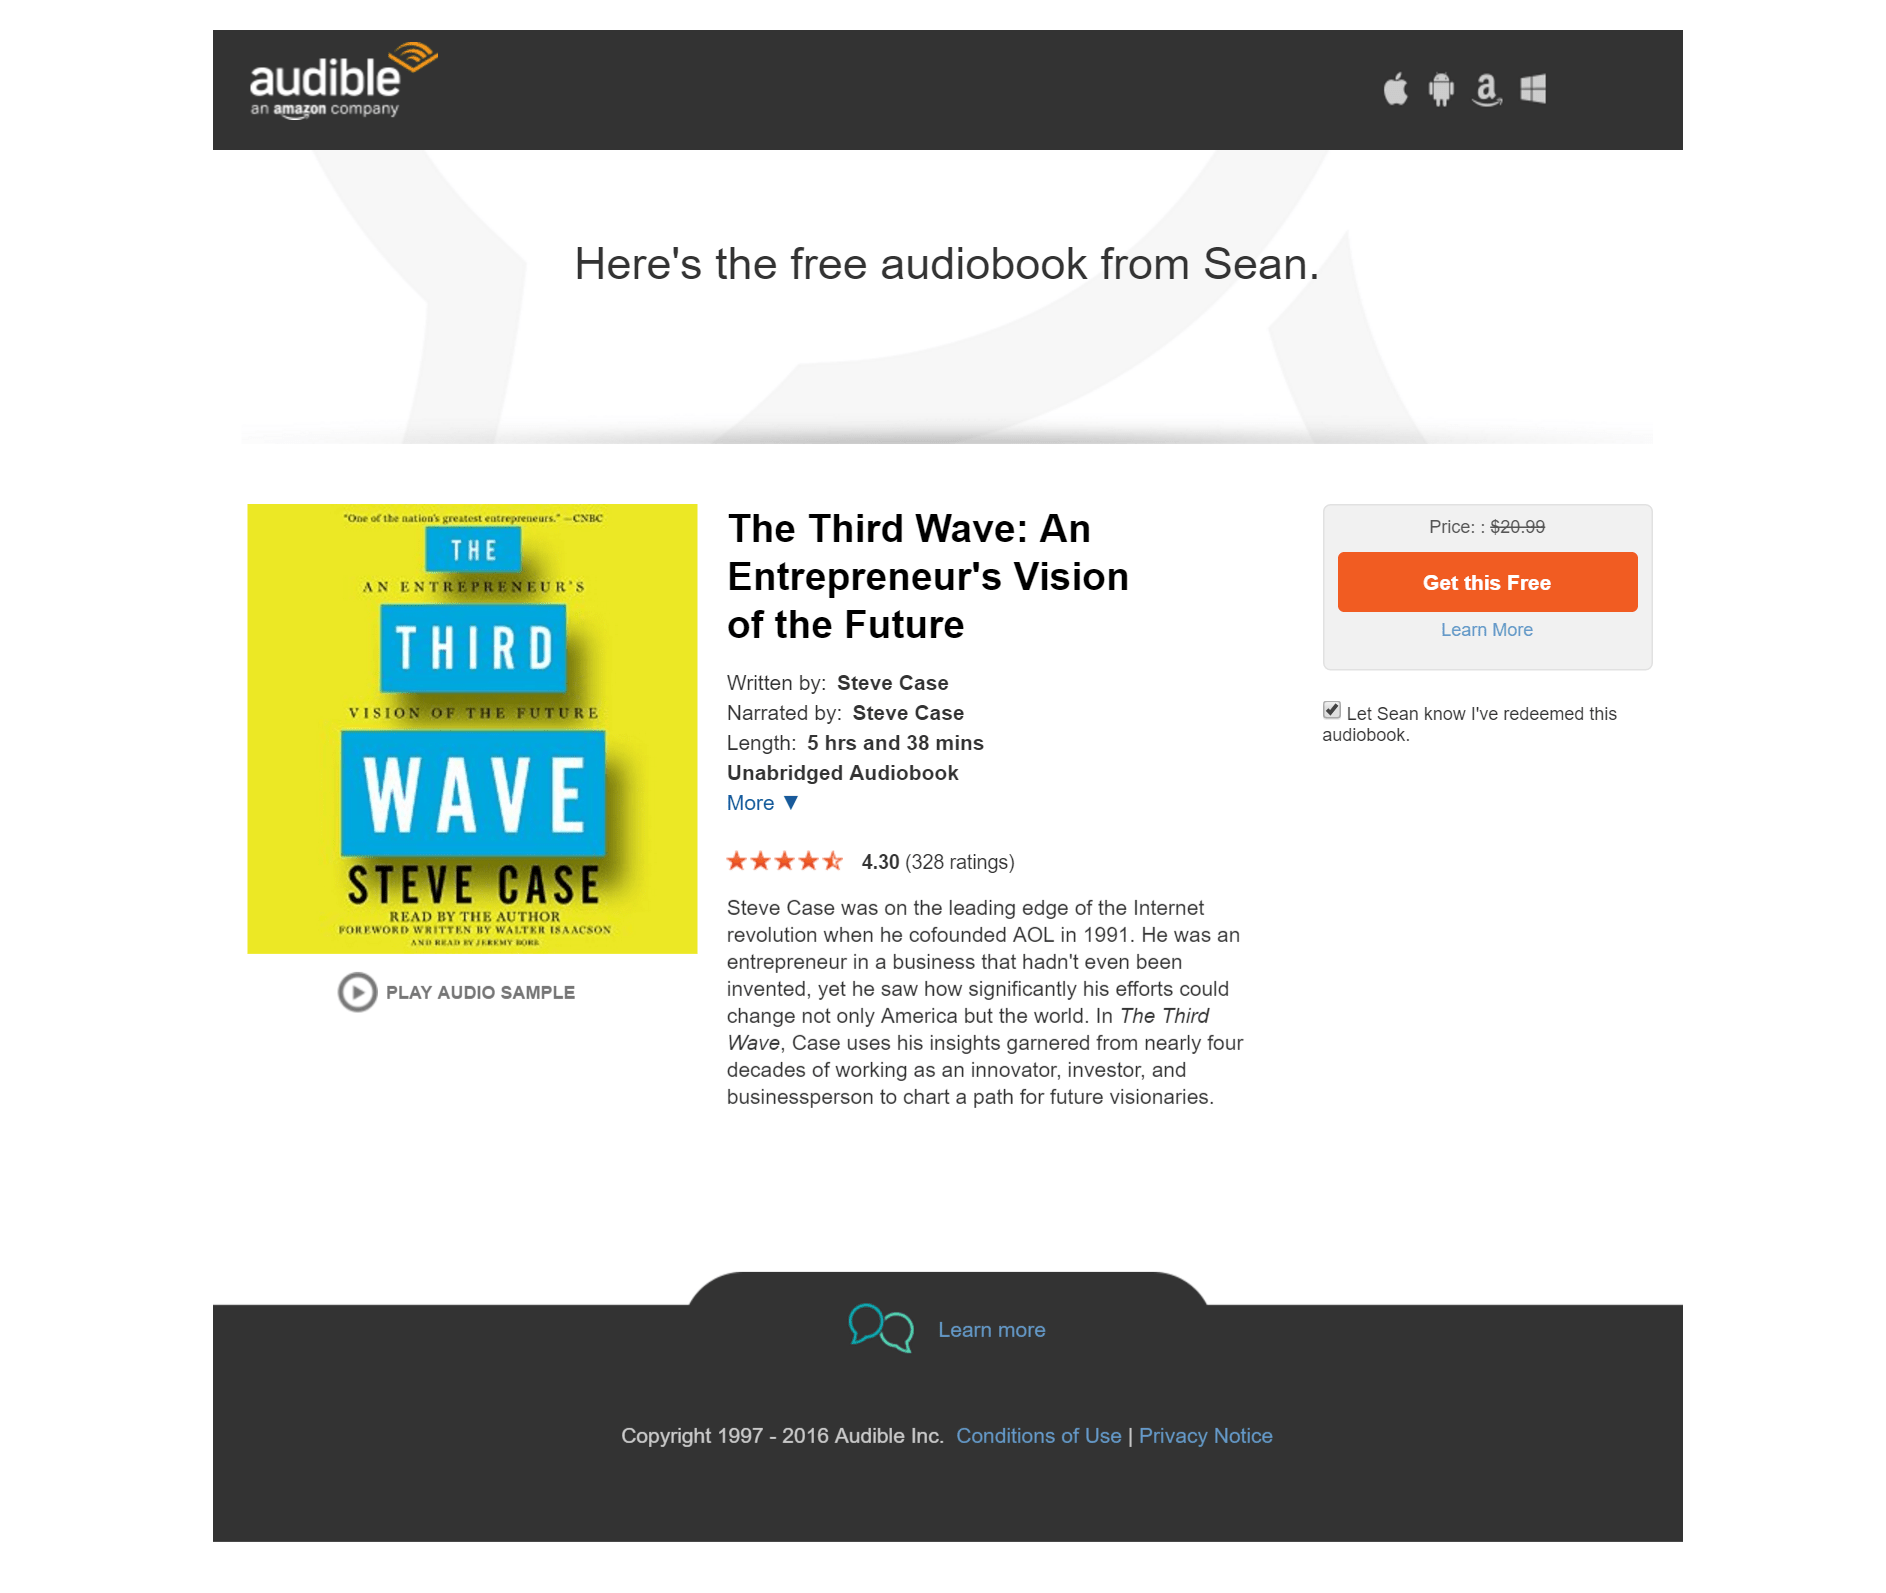 free audio book from